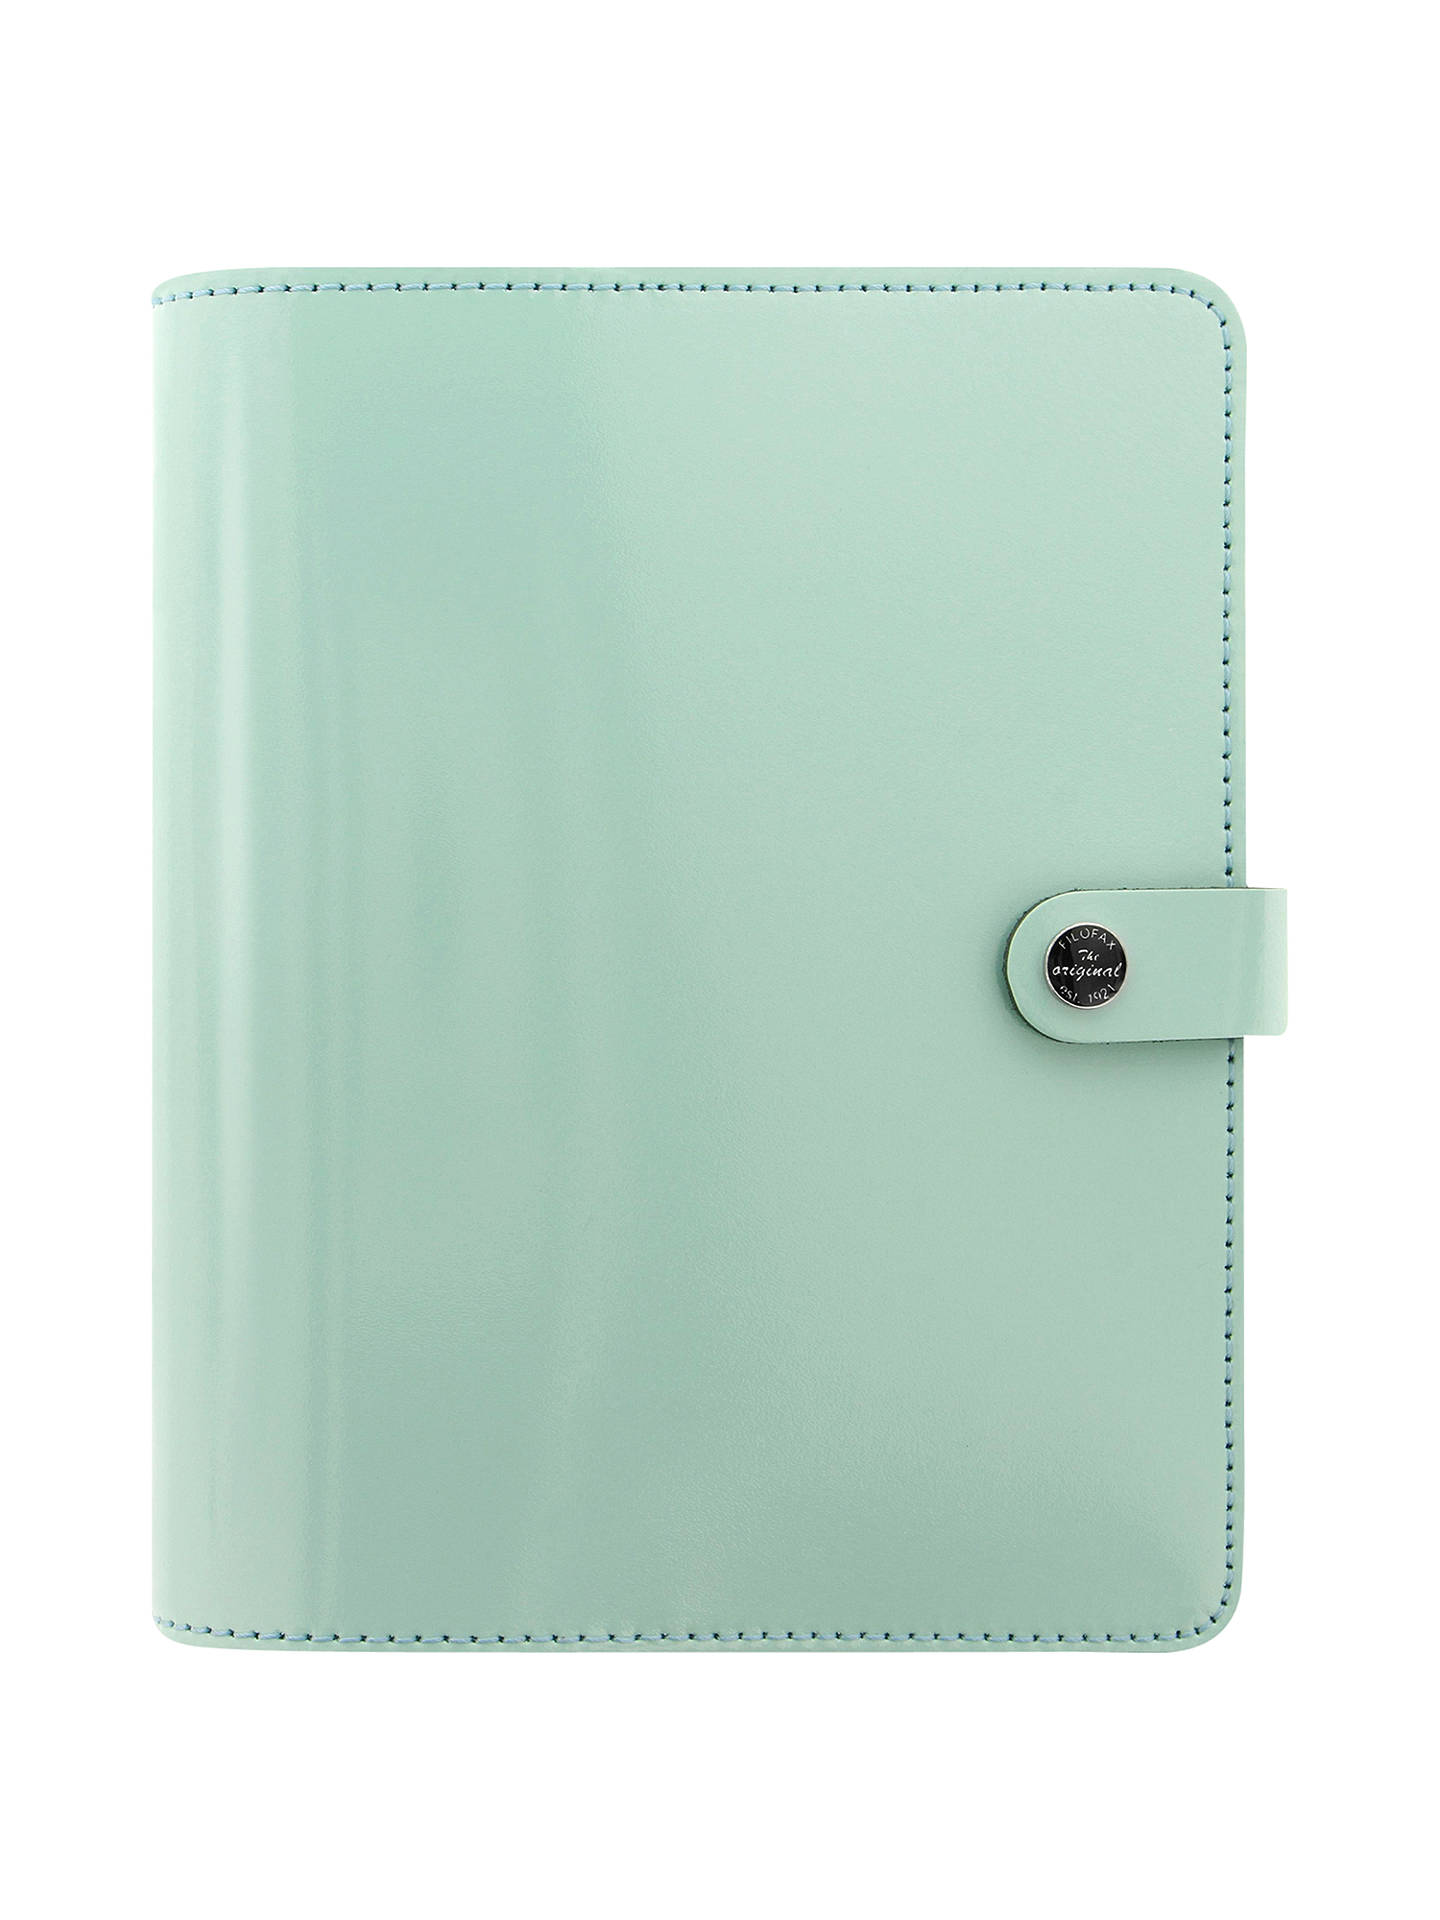 Filofax The Original A5 Organiser, Duck Egg at John Lewis